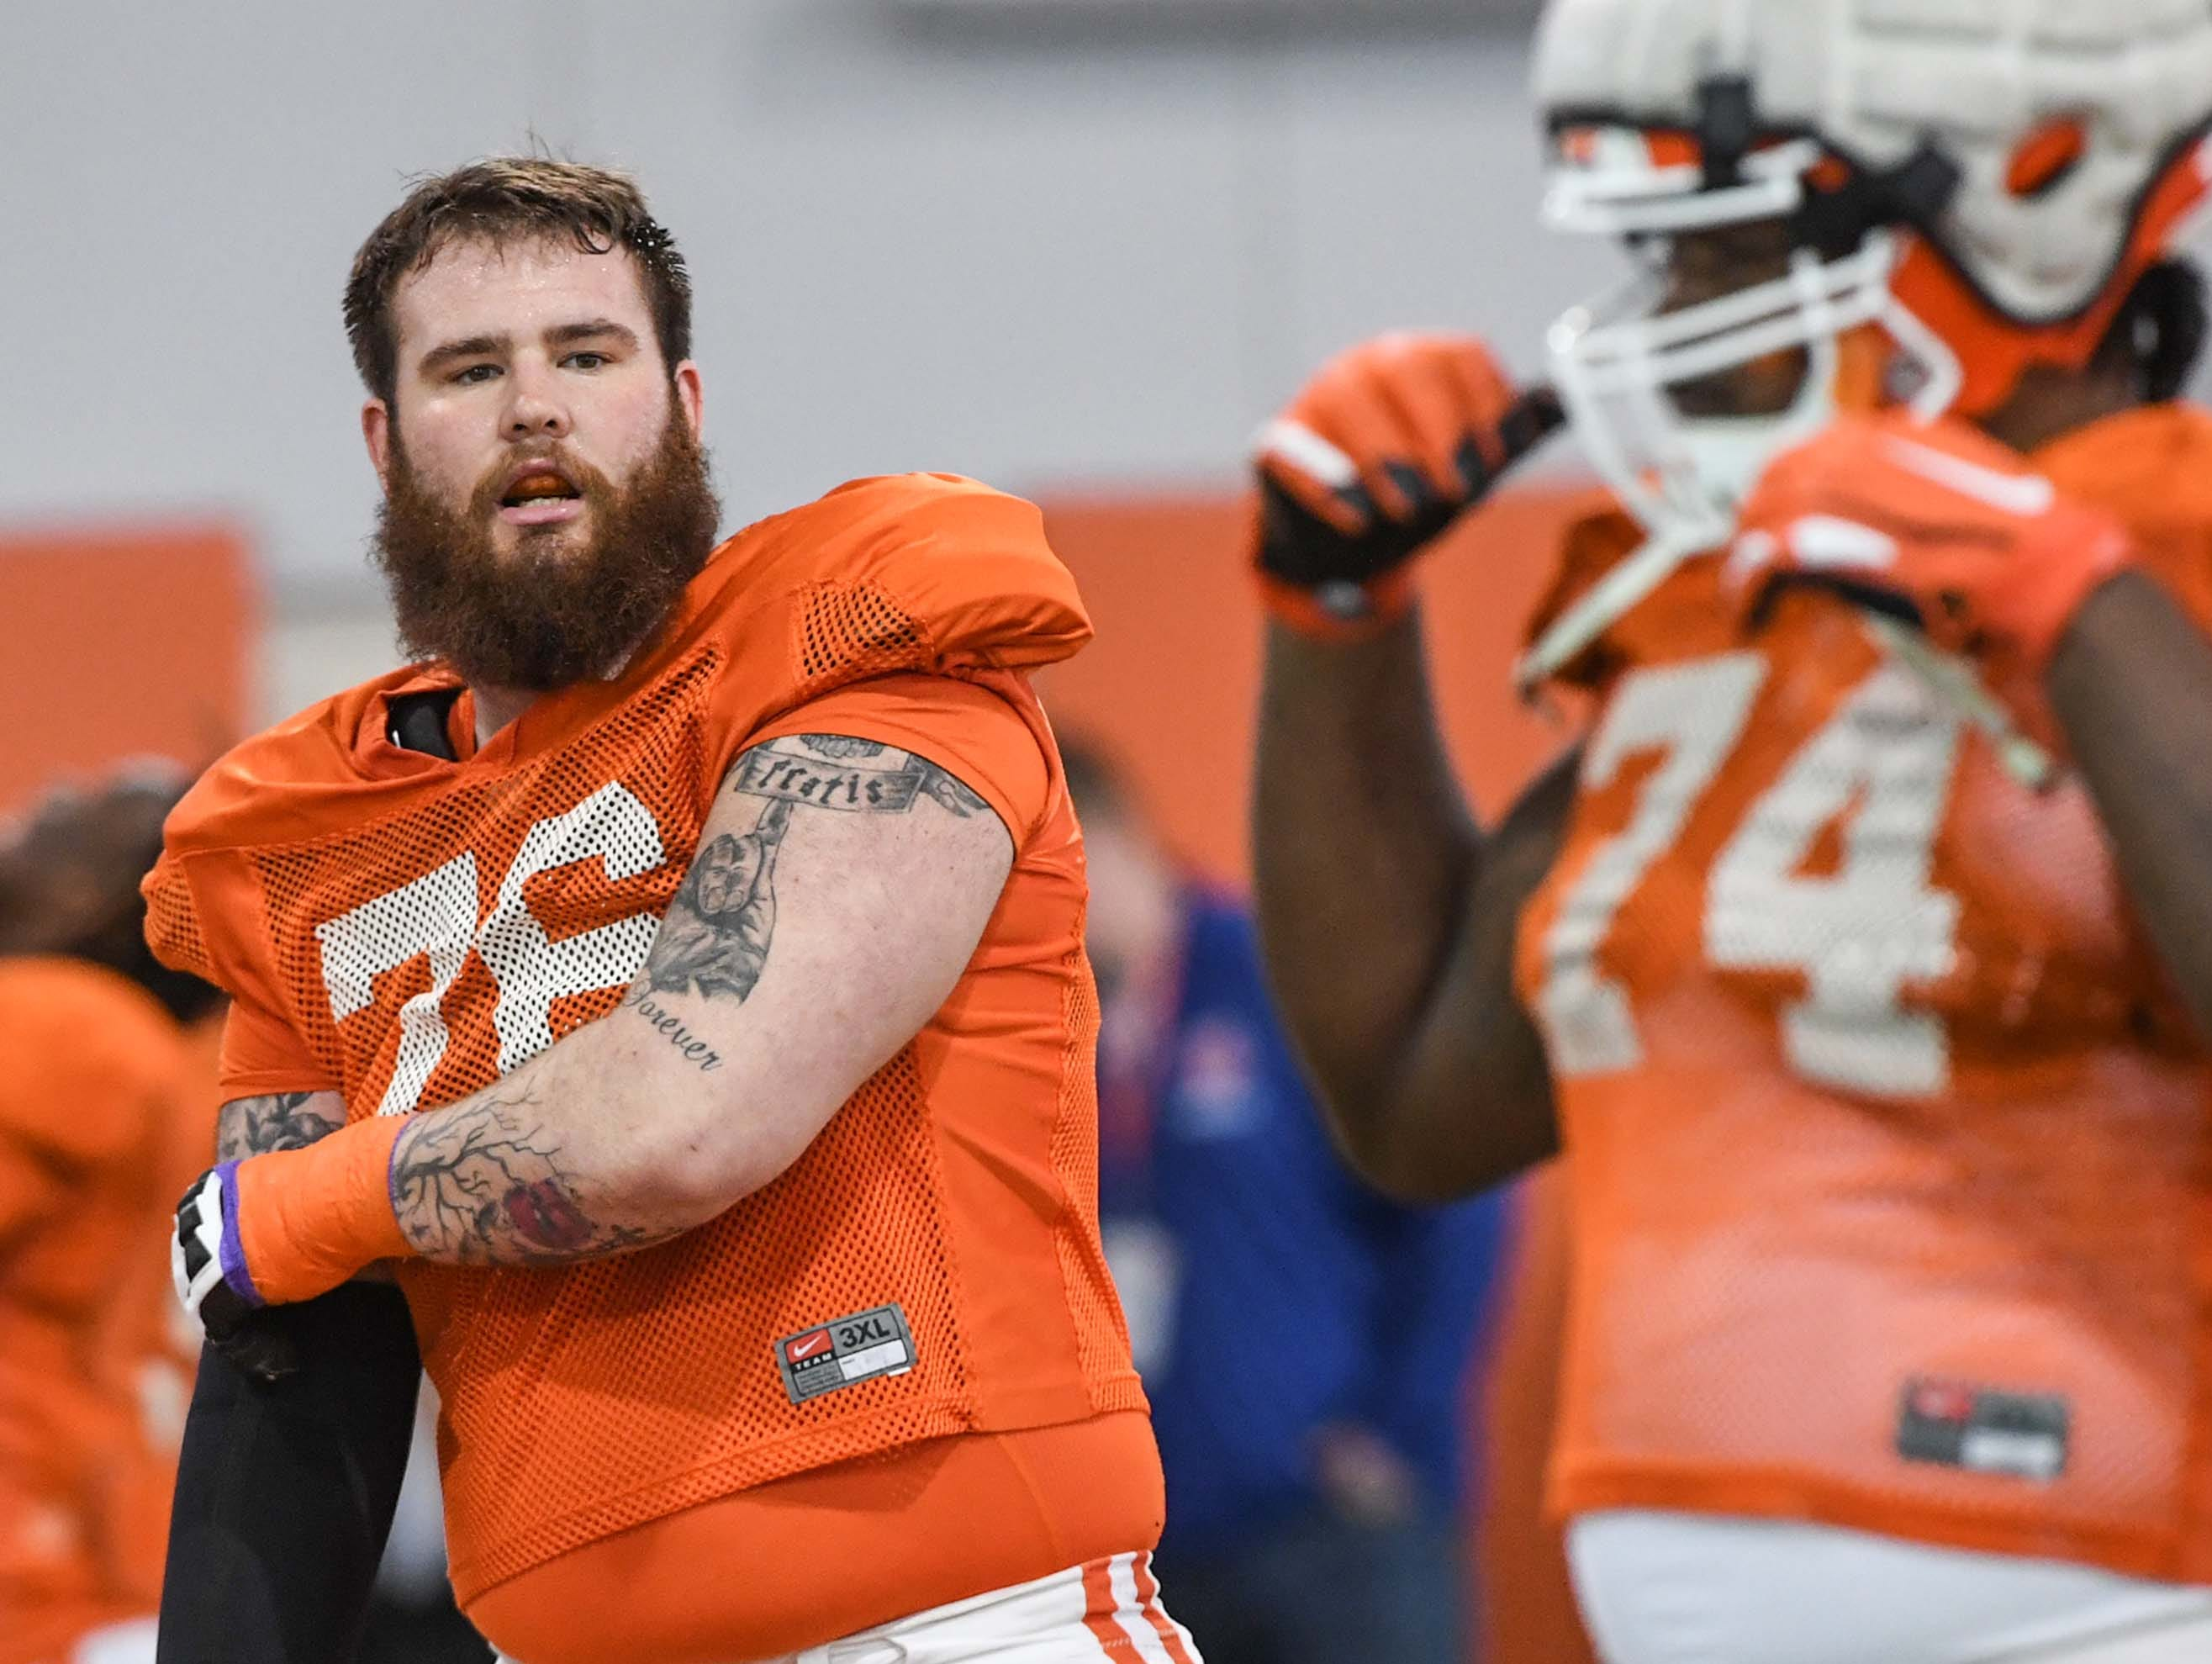 Clemson offensive lineman Sean Pollard (76) stretches during practice at the Poe Indoor Facility in Clemson Monday.